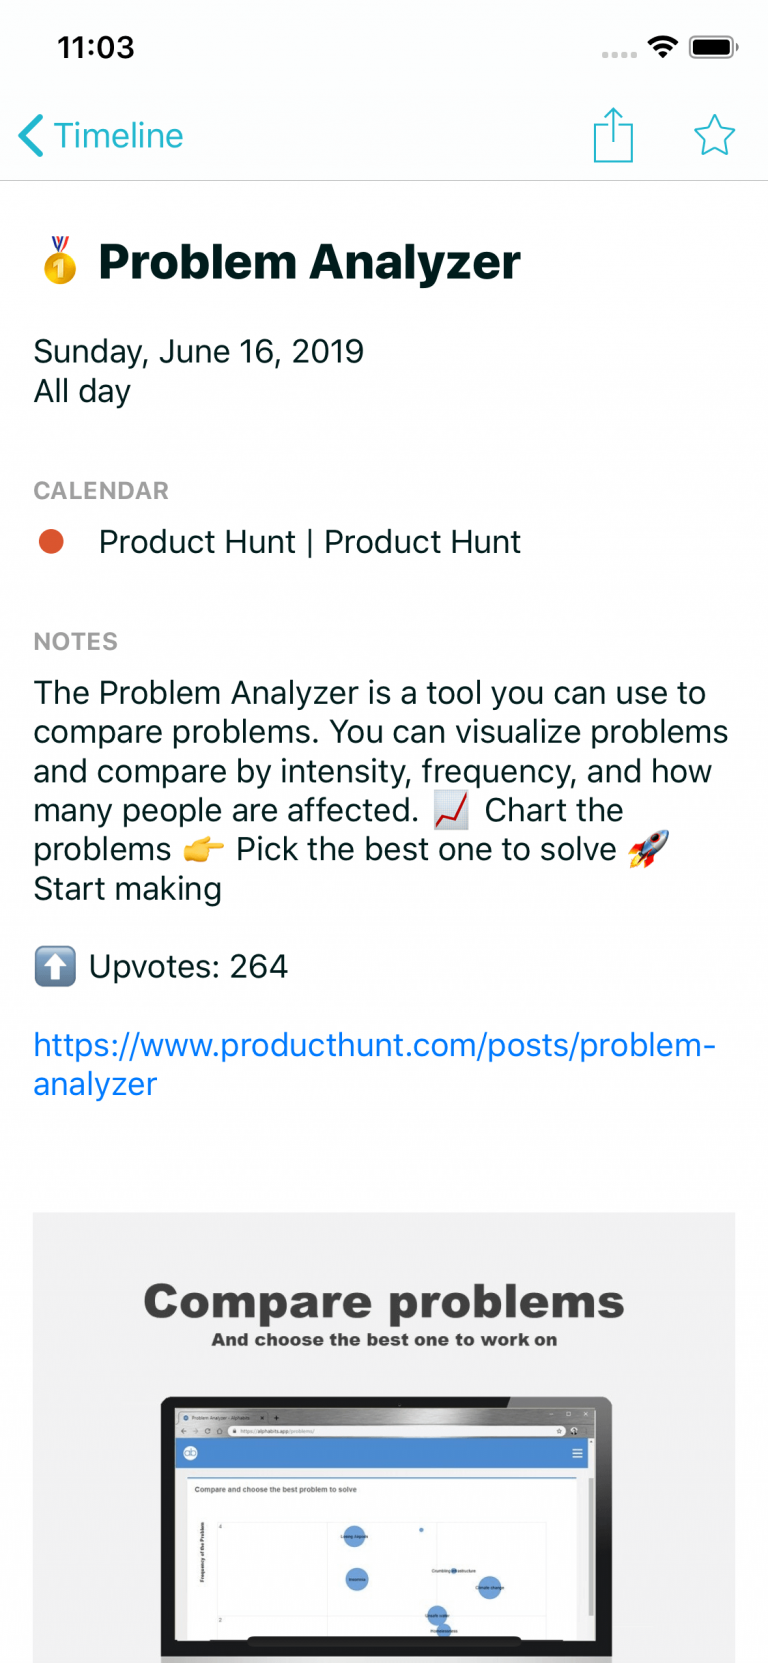 """See top three """"Products of the day"""" from Product Hunt right in your calendar"""